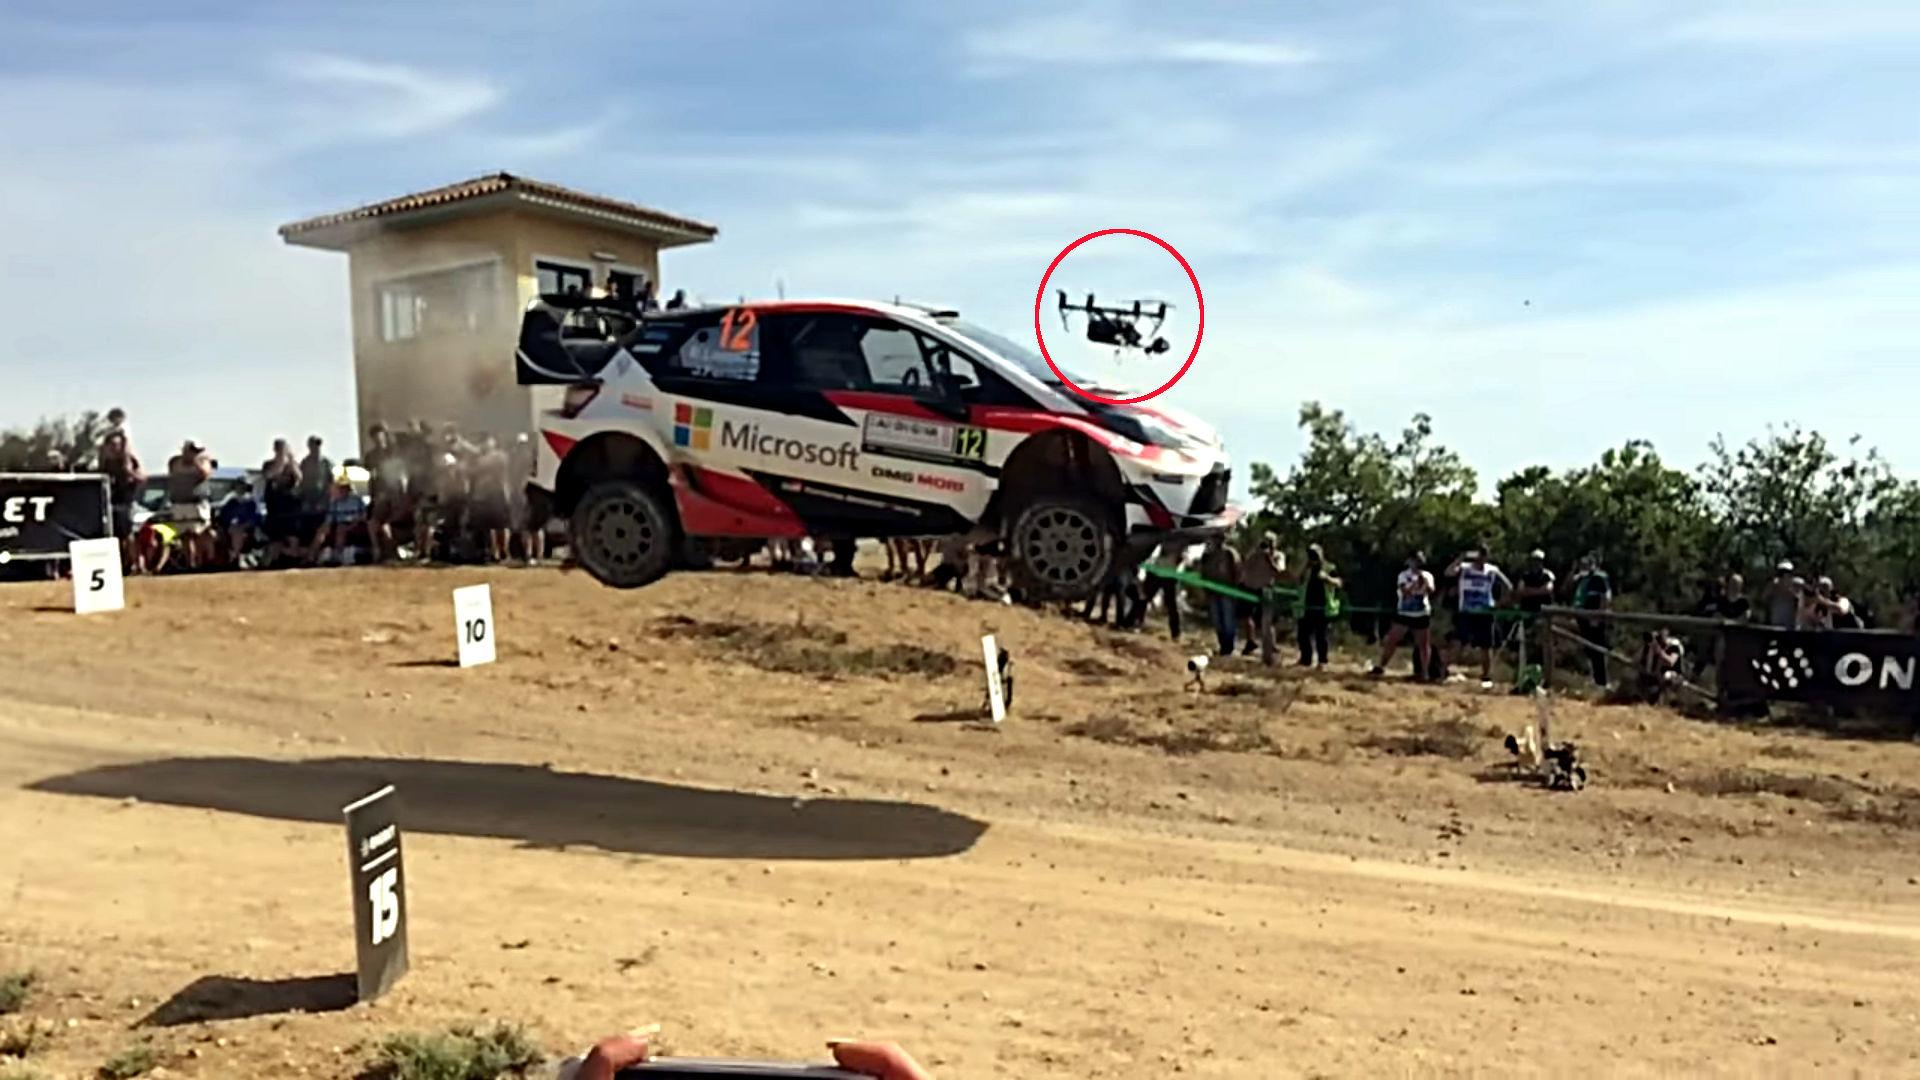 Watch Slow-Mo Video Of Jumping Rally Car Slamming Into Drone